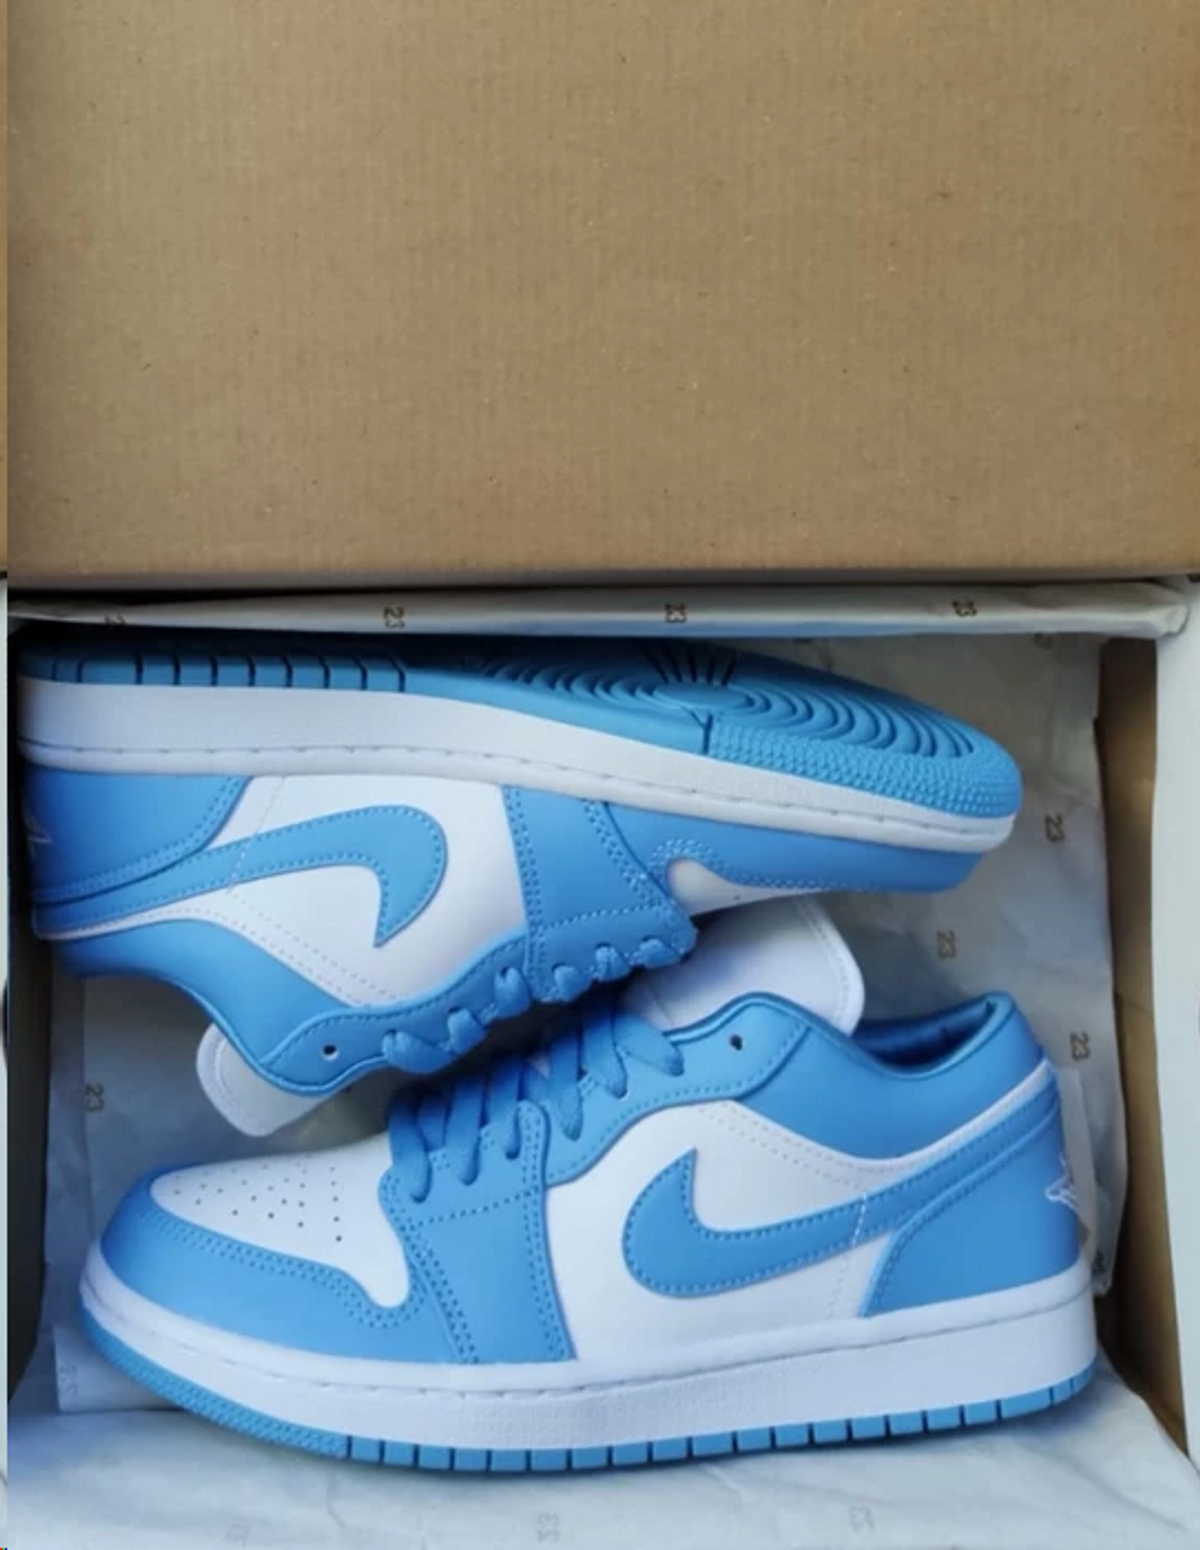 Nike Air Jordan 1 Low Unc Grailed